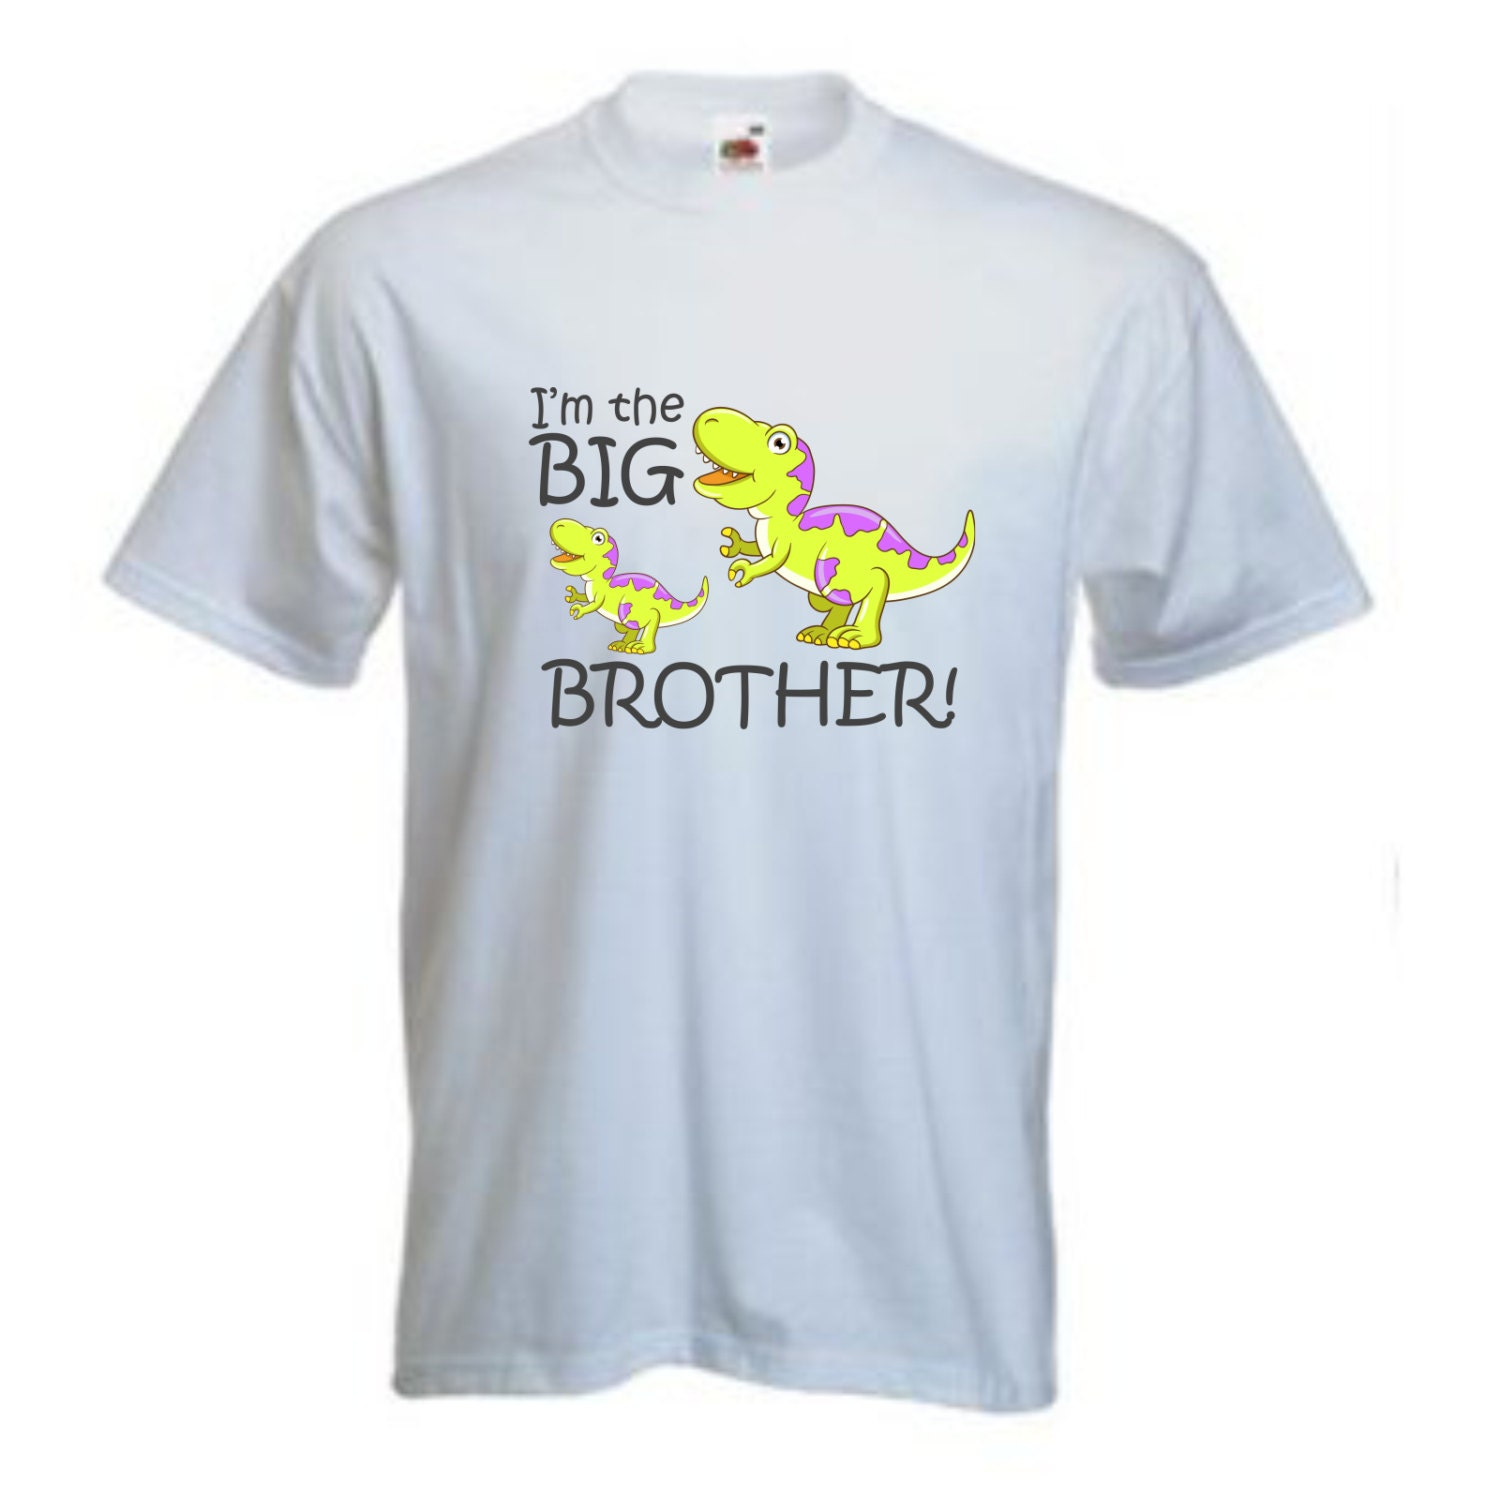 Personalised childrens t shirt Im the Big Brother Green Dinosaur Design